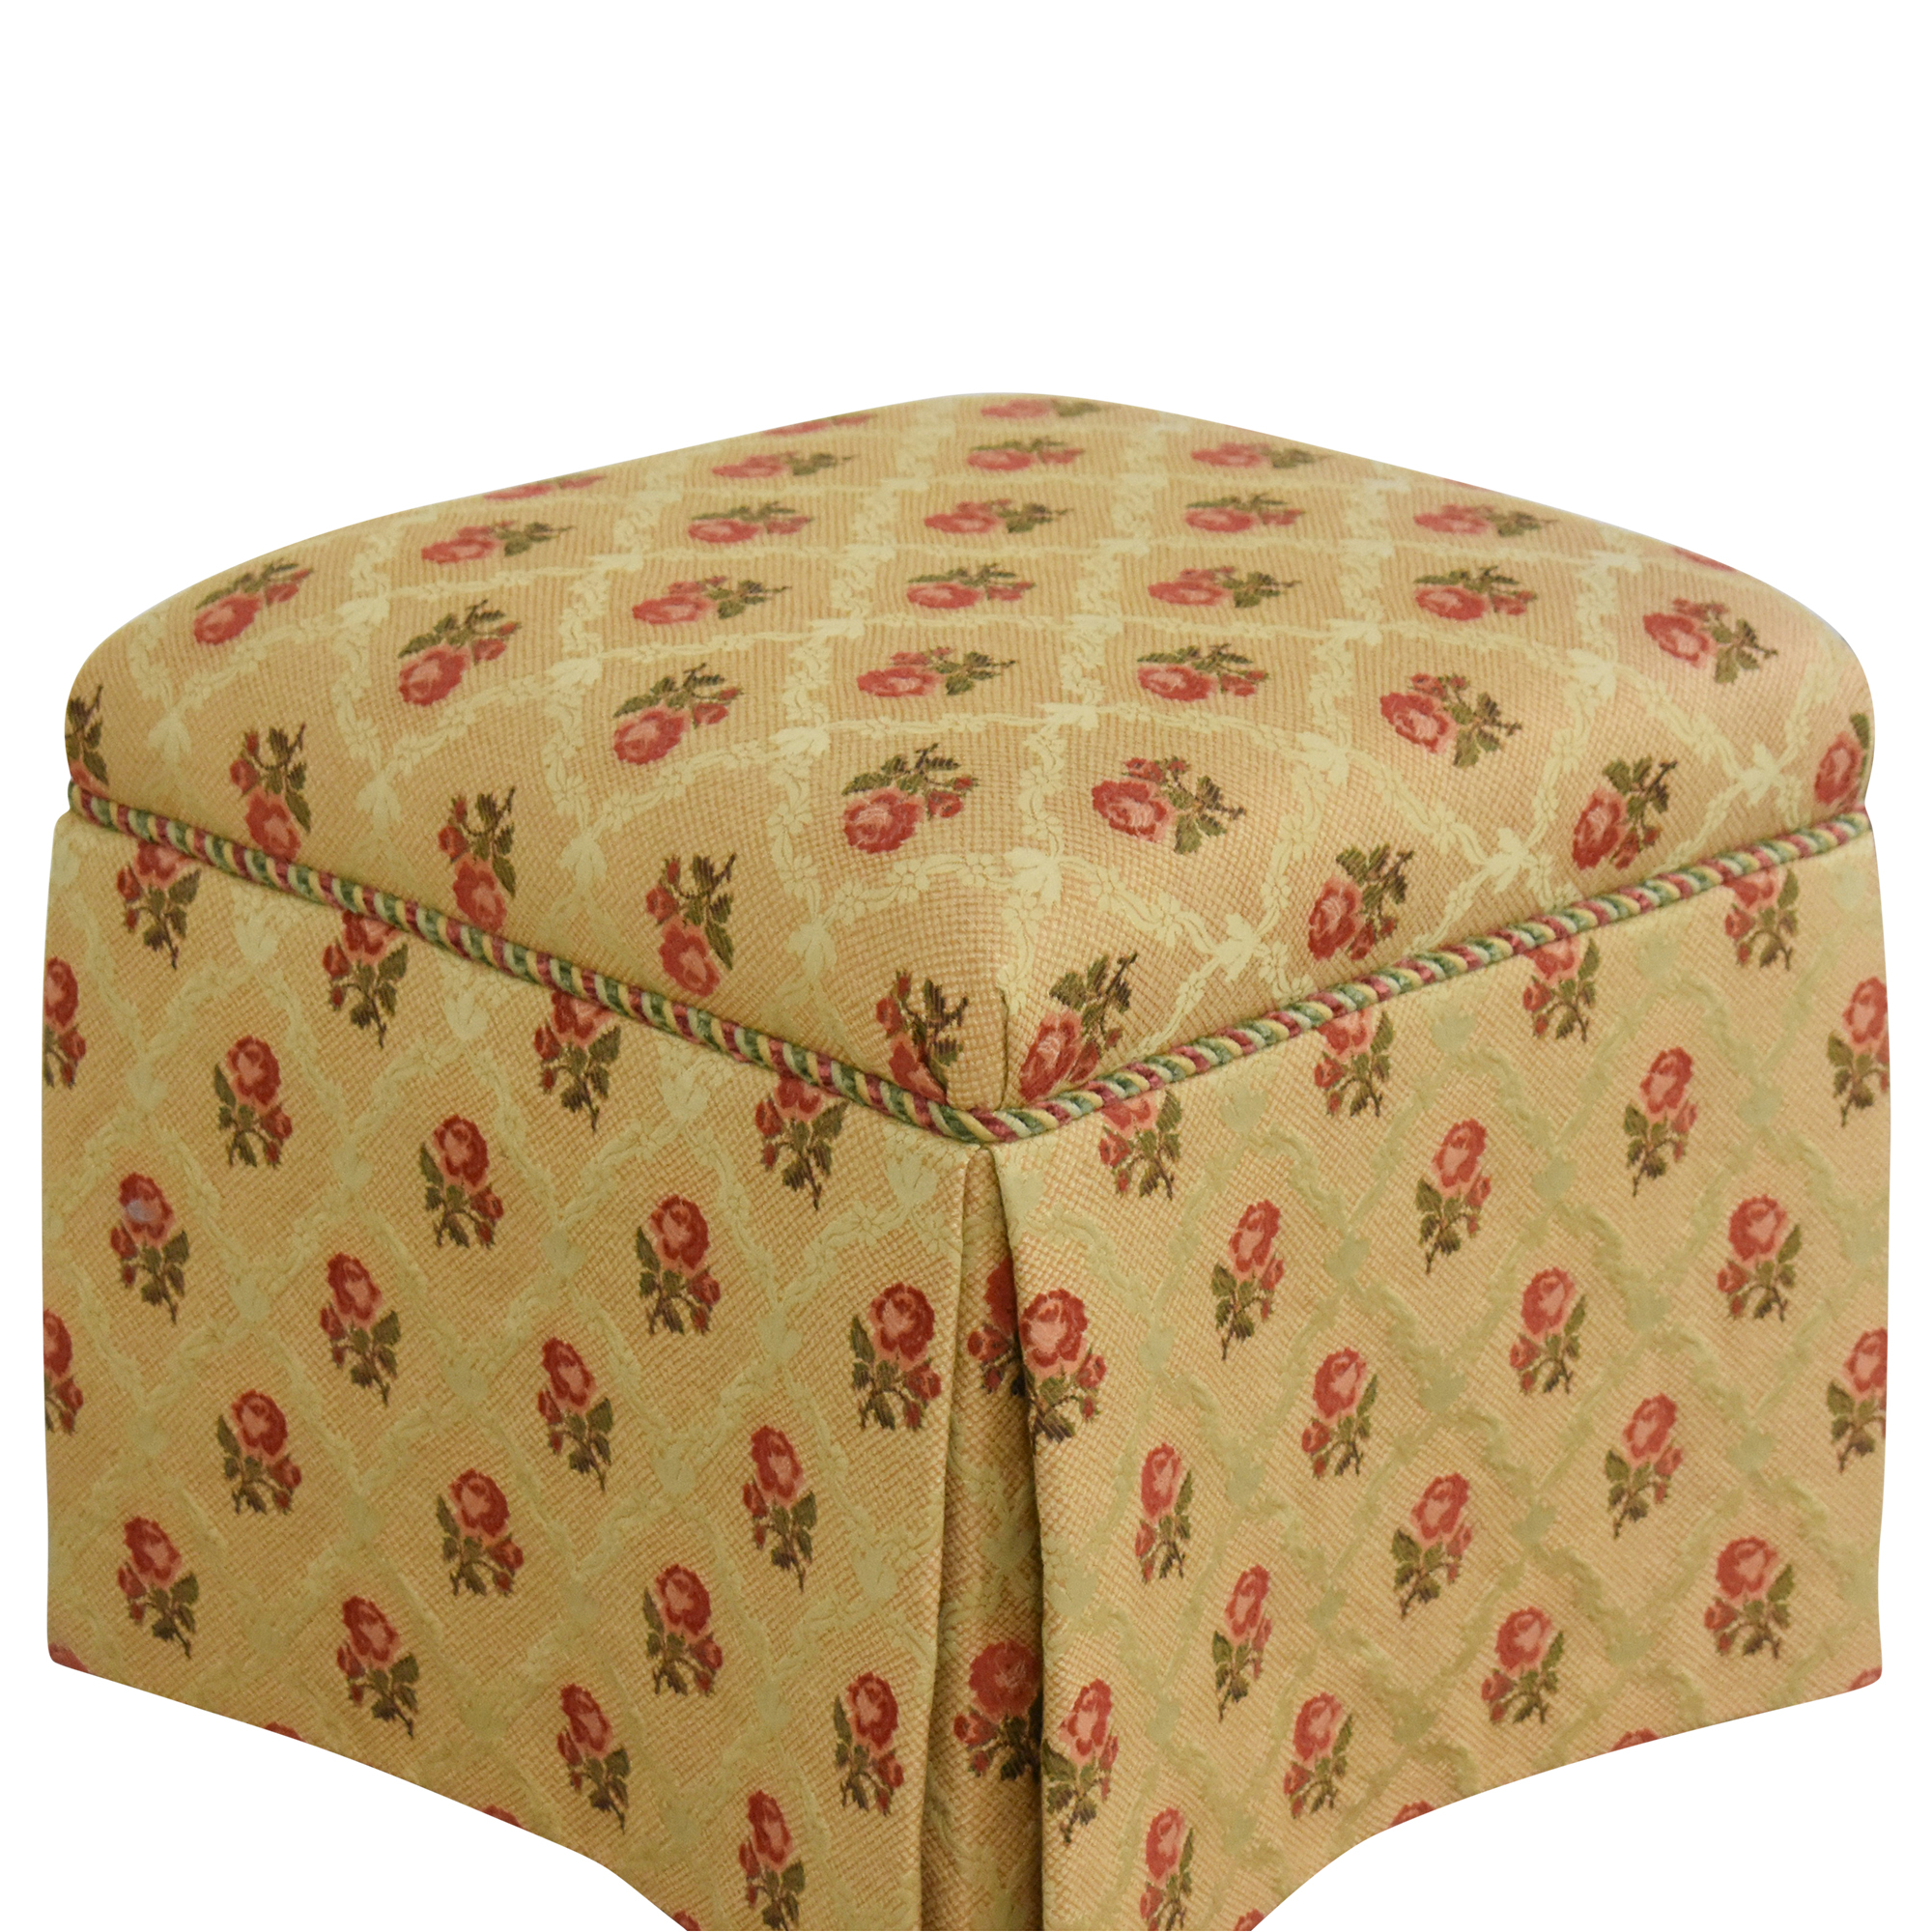 Skirted Square Ottoman / Ottomans